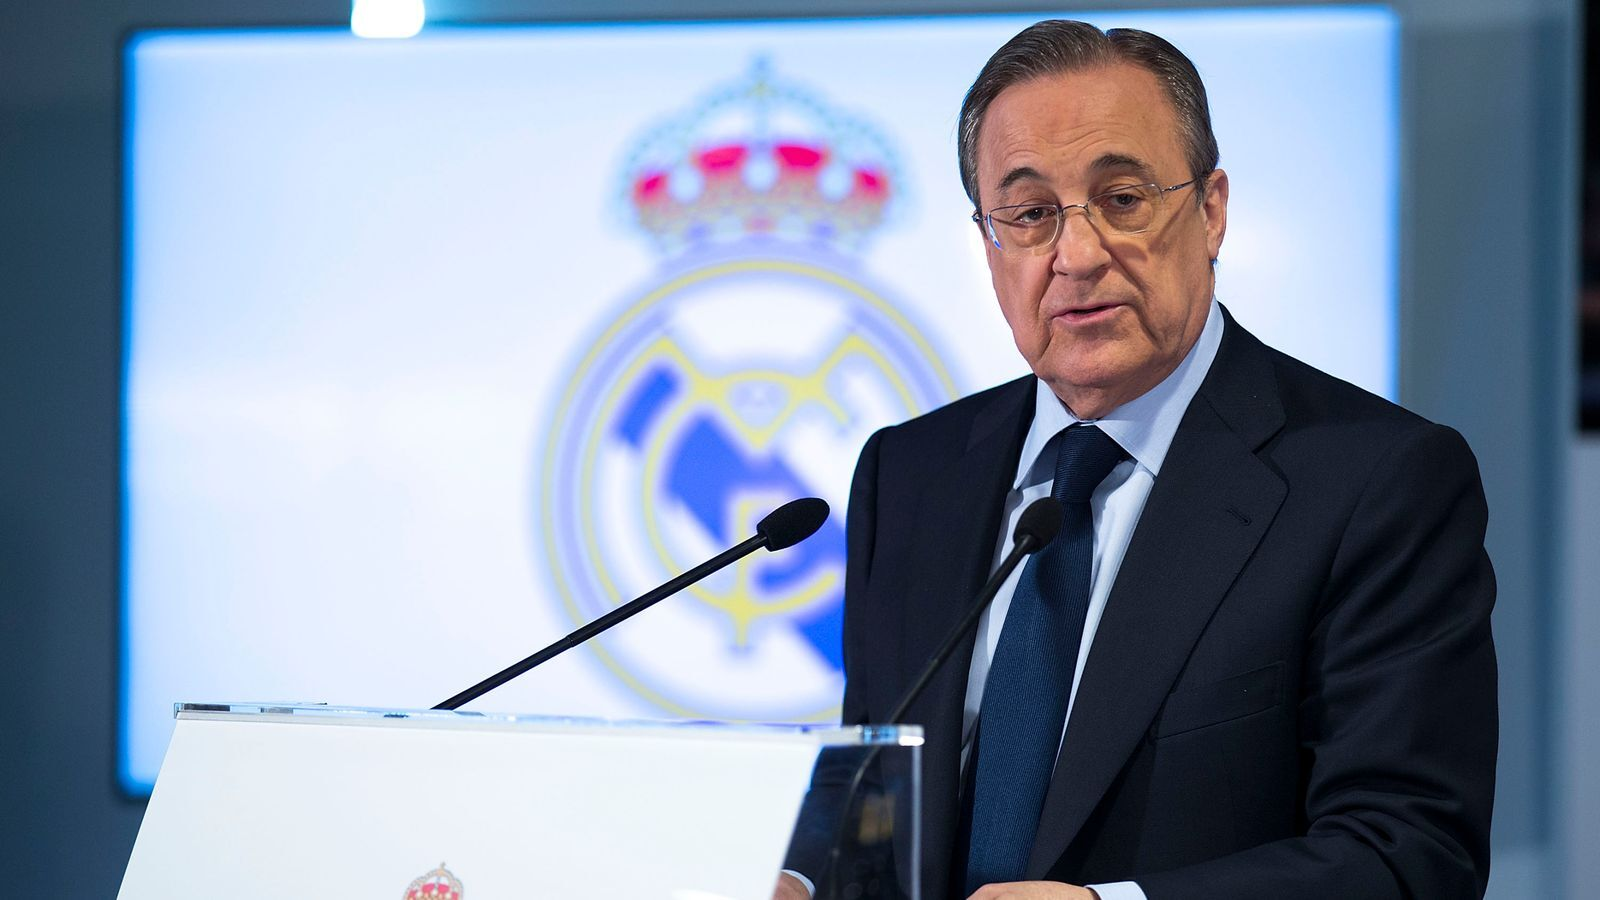 Real Madrid chief Florentino Perez likely to be re-elected as Real Madrid president with no alternative